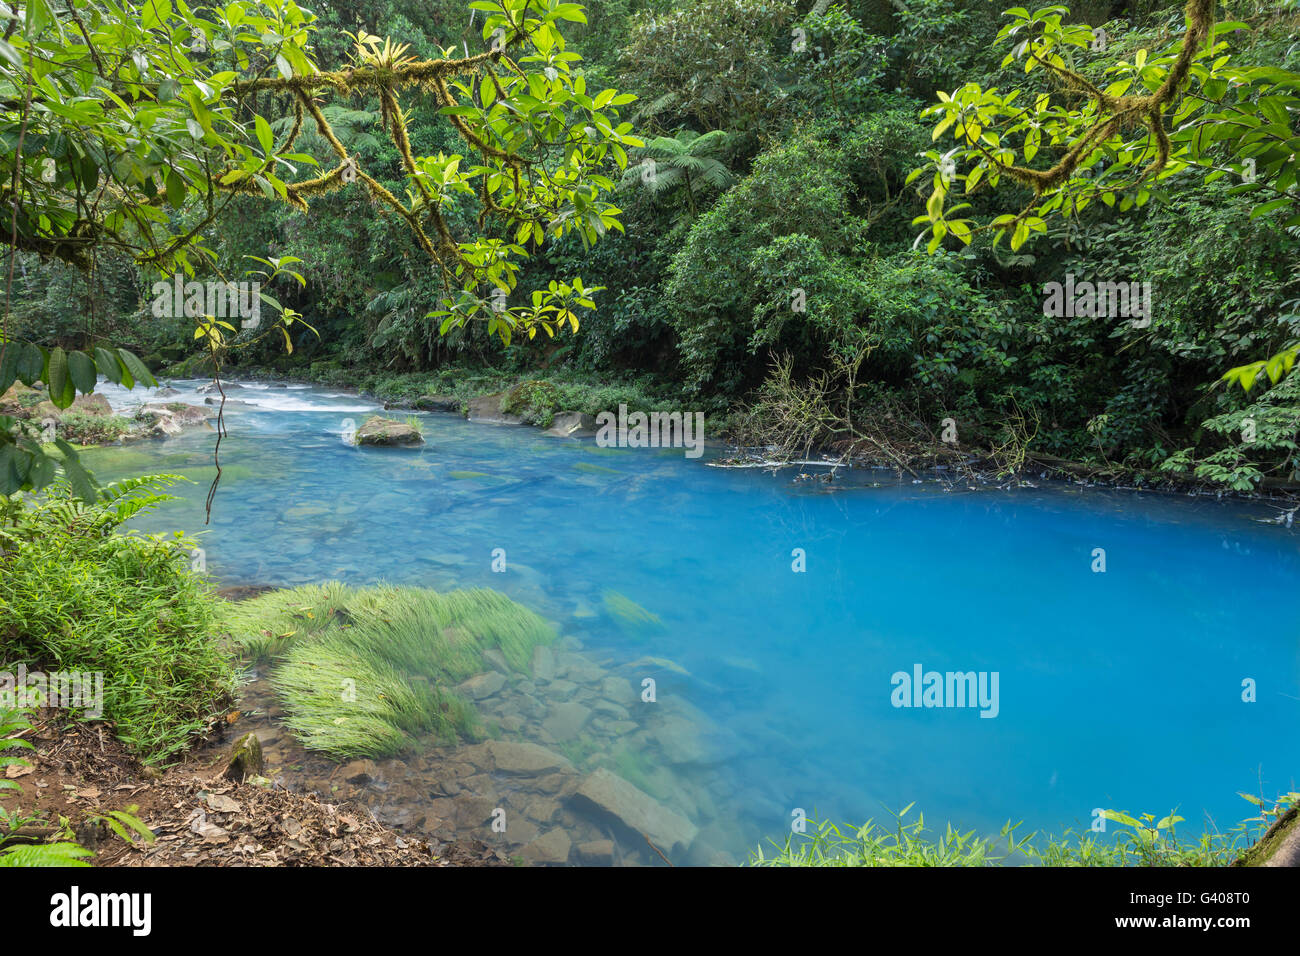 A scenic blue river view of the amazonian jungle - Stock Image